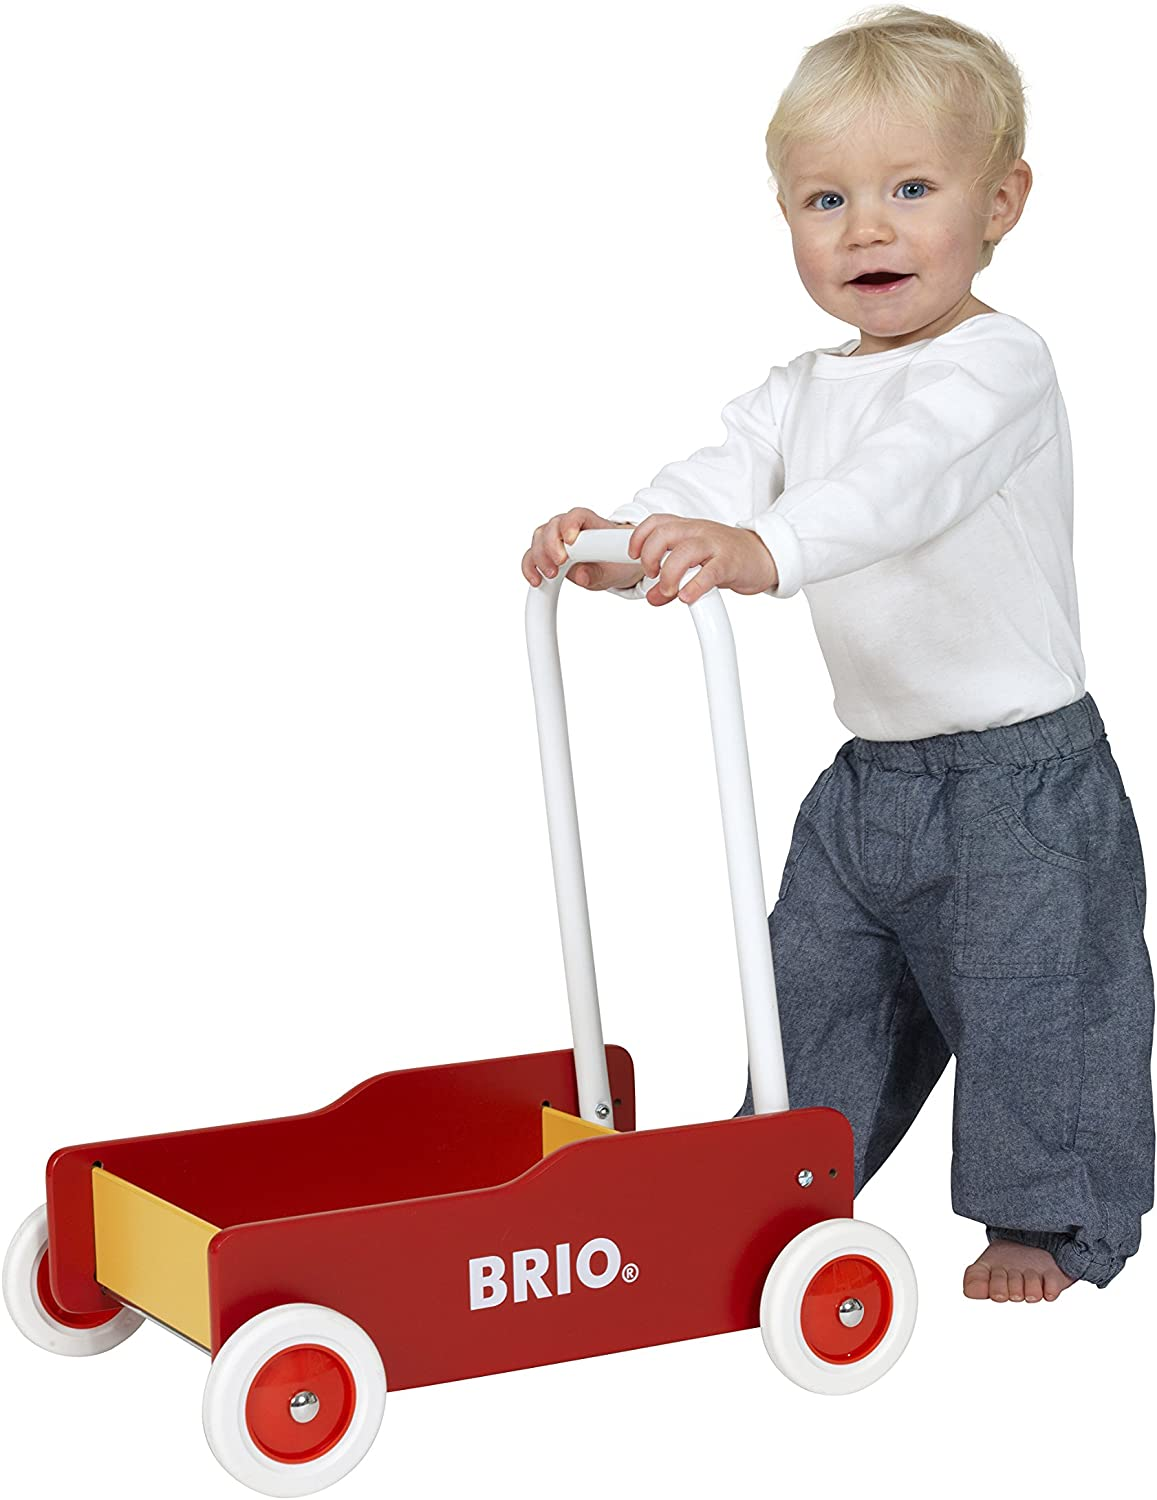 Best walker for newly mobile toddlers.